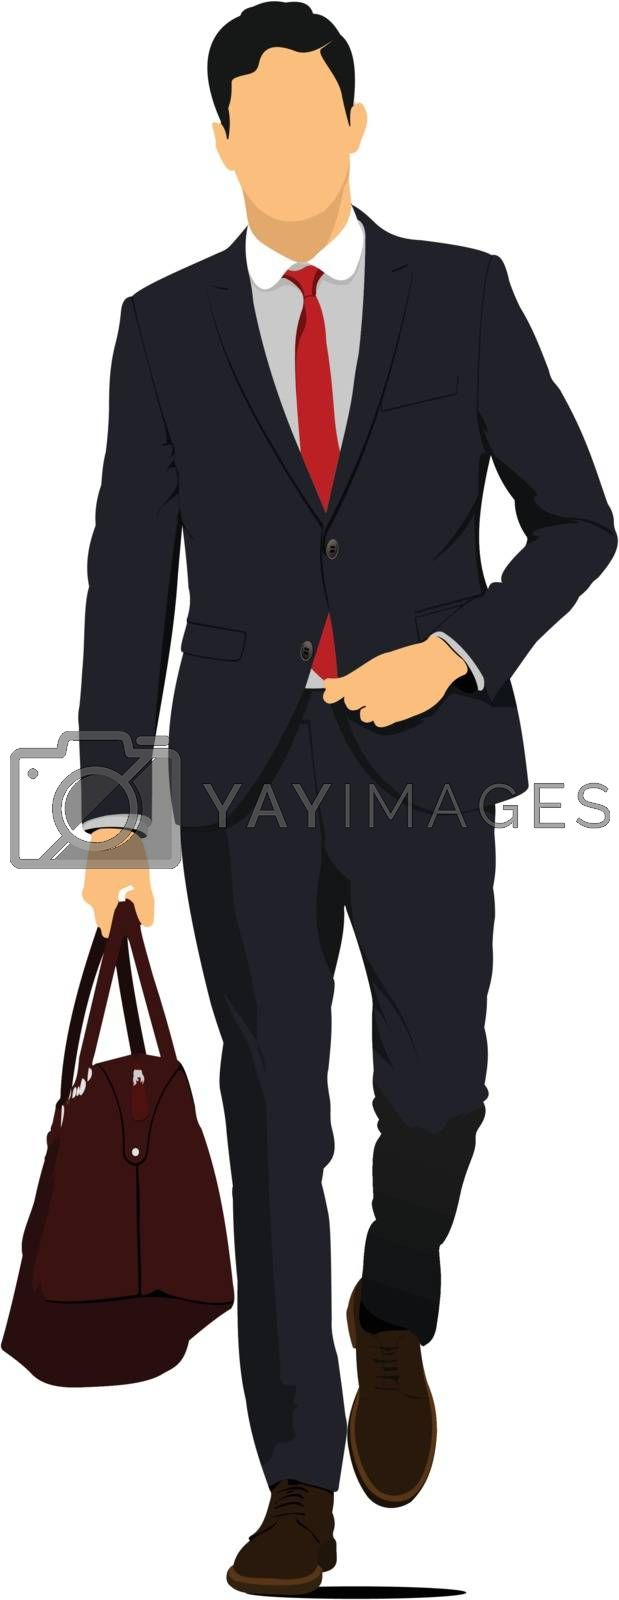 Royalty free image of Young handsome man with brown bag. Businessman.Vector illustrati by leonido